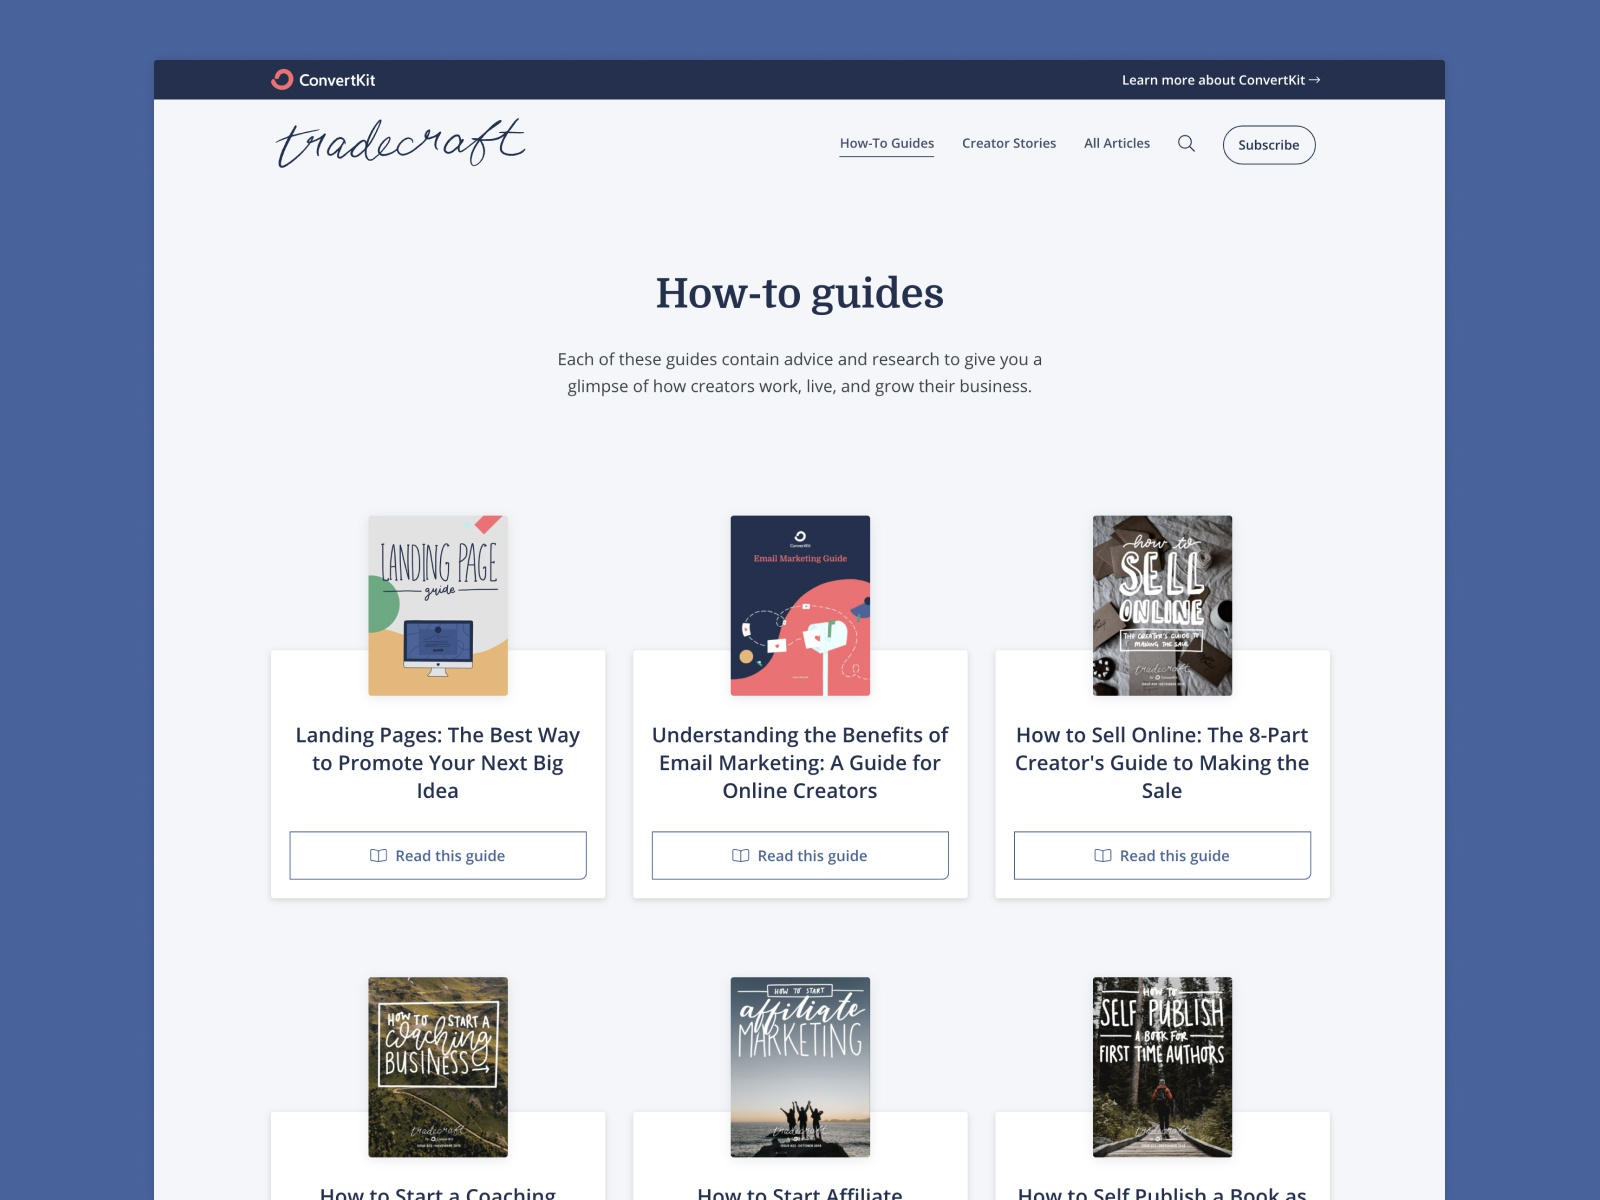 Library of how-to guides